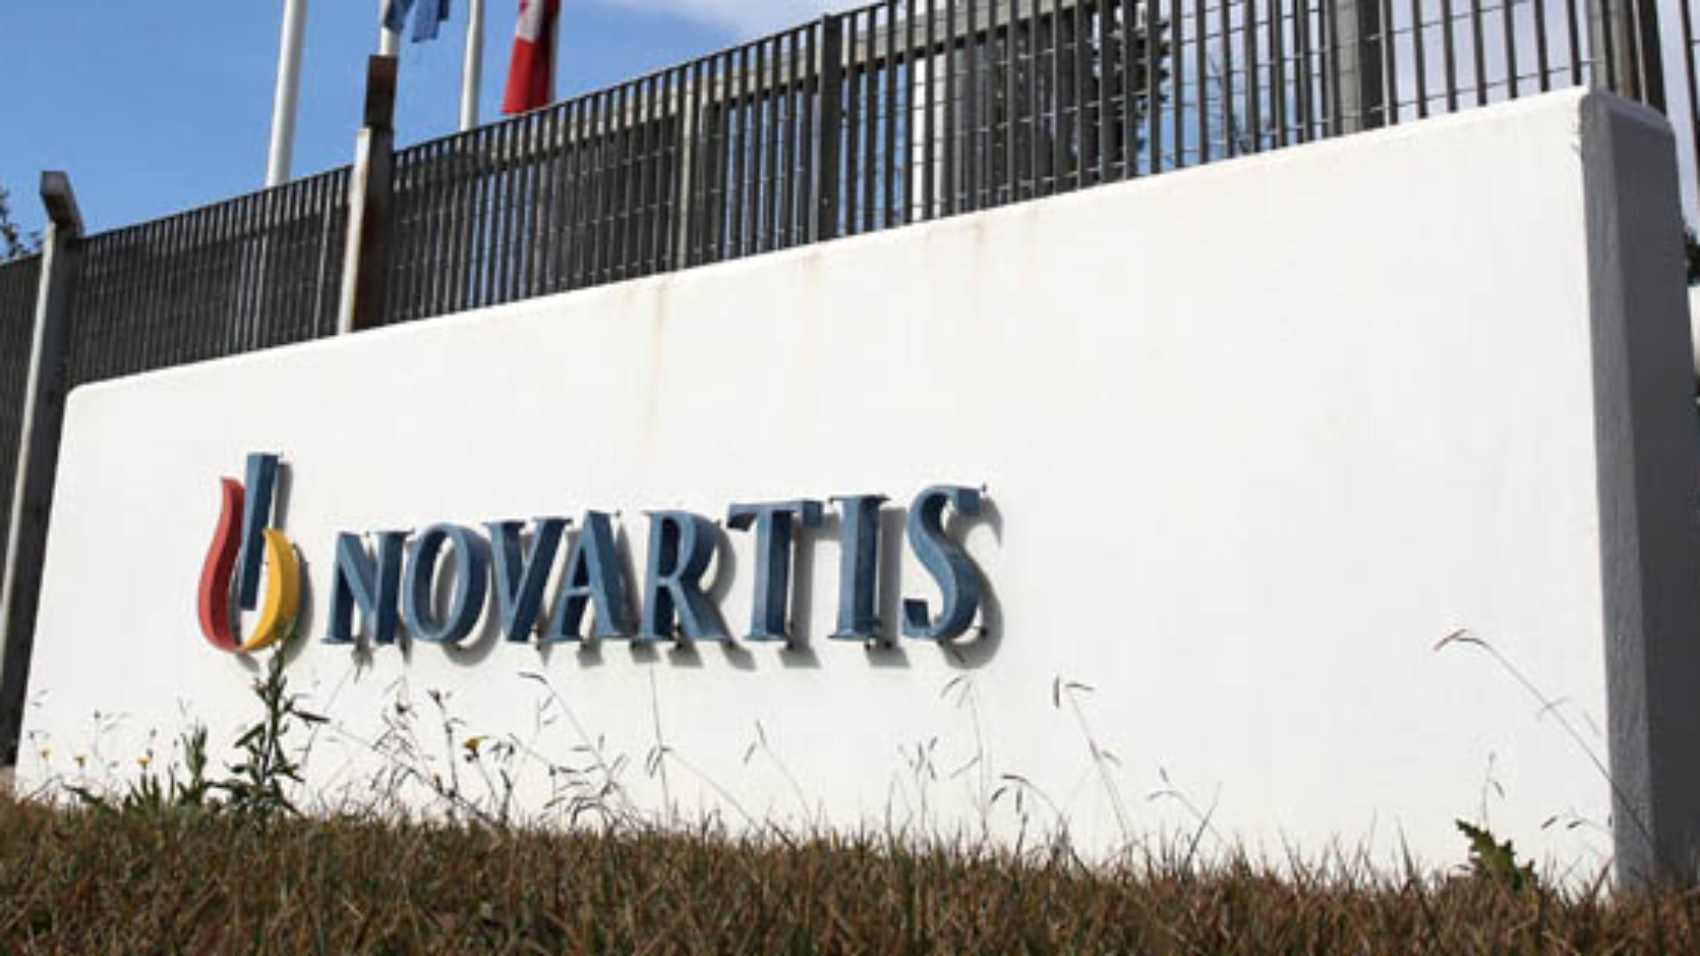 epa05697936 External view of the offices of Swiss medicine maker Novartis in Athens, Greece, 04 January 2017. Corruption prosecutors raided the offices of Novartis several days earlier as part of an ongoing investigation into allegations that Novartis bribed doctors and public officials. Greek authorities also requested the assistance of US authorities who first launched an investigation into the drug maker two years ago.  EPA/ALEXANDROS VLACHOS